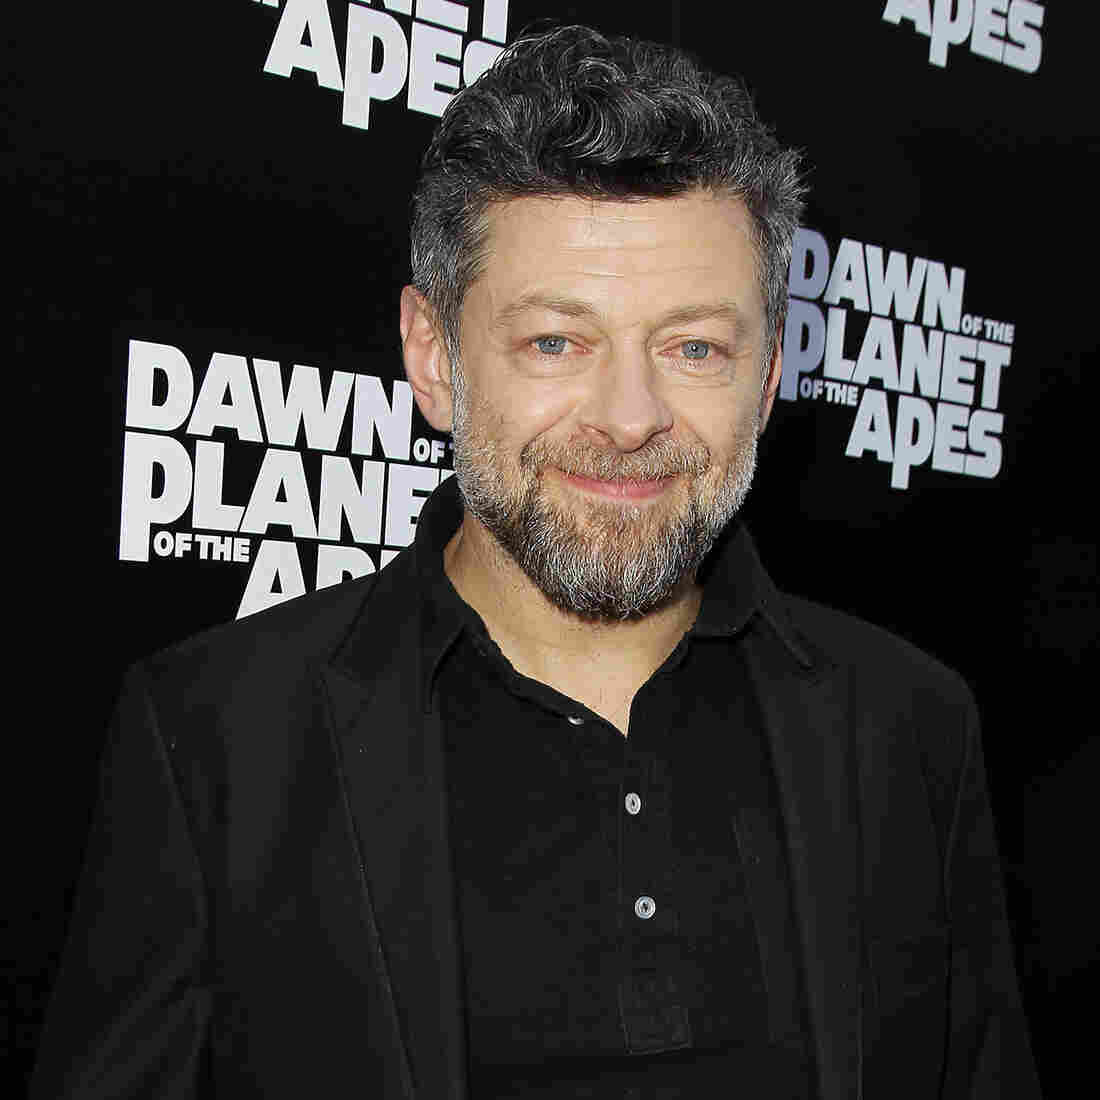 Andy Serkis: God Save The Queen's English